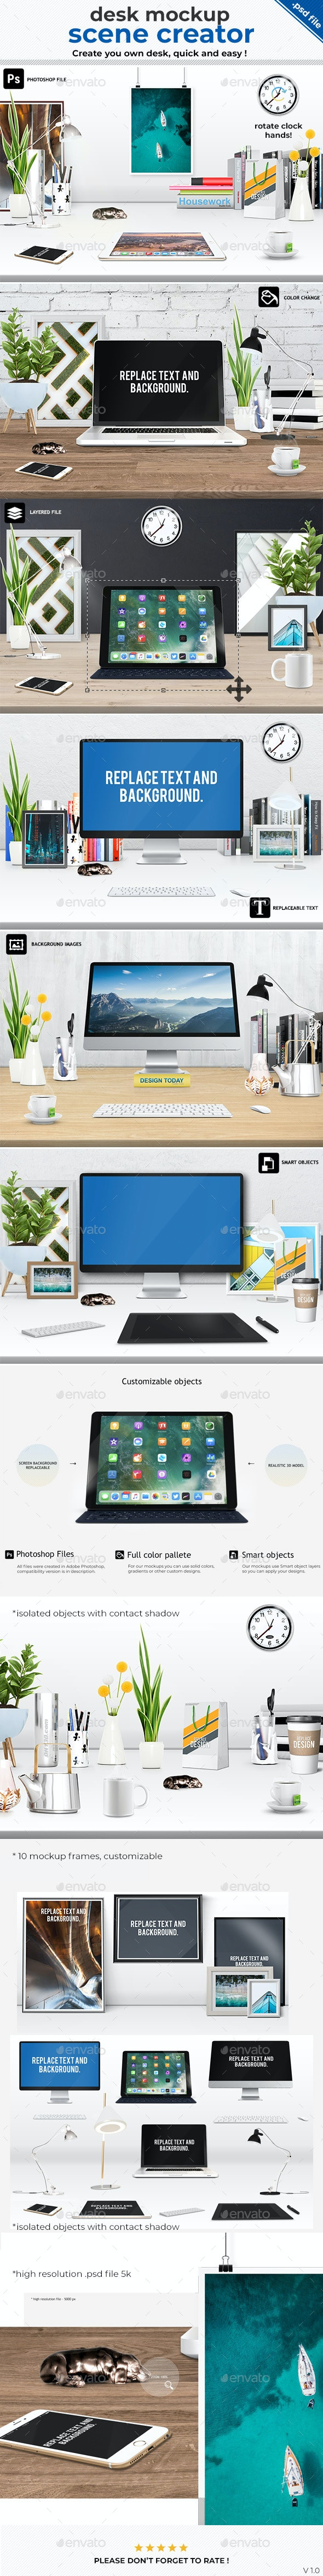 Scene Creator Office Desk Mock-Up - Hero Images Graphics